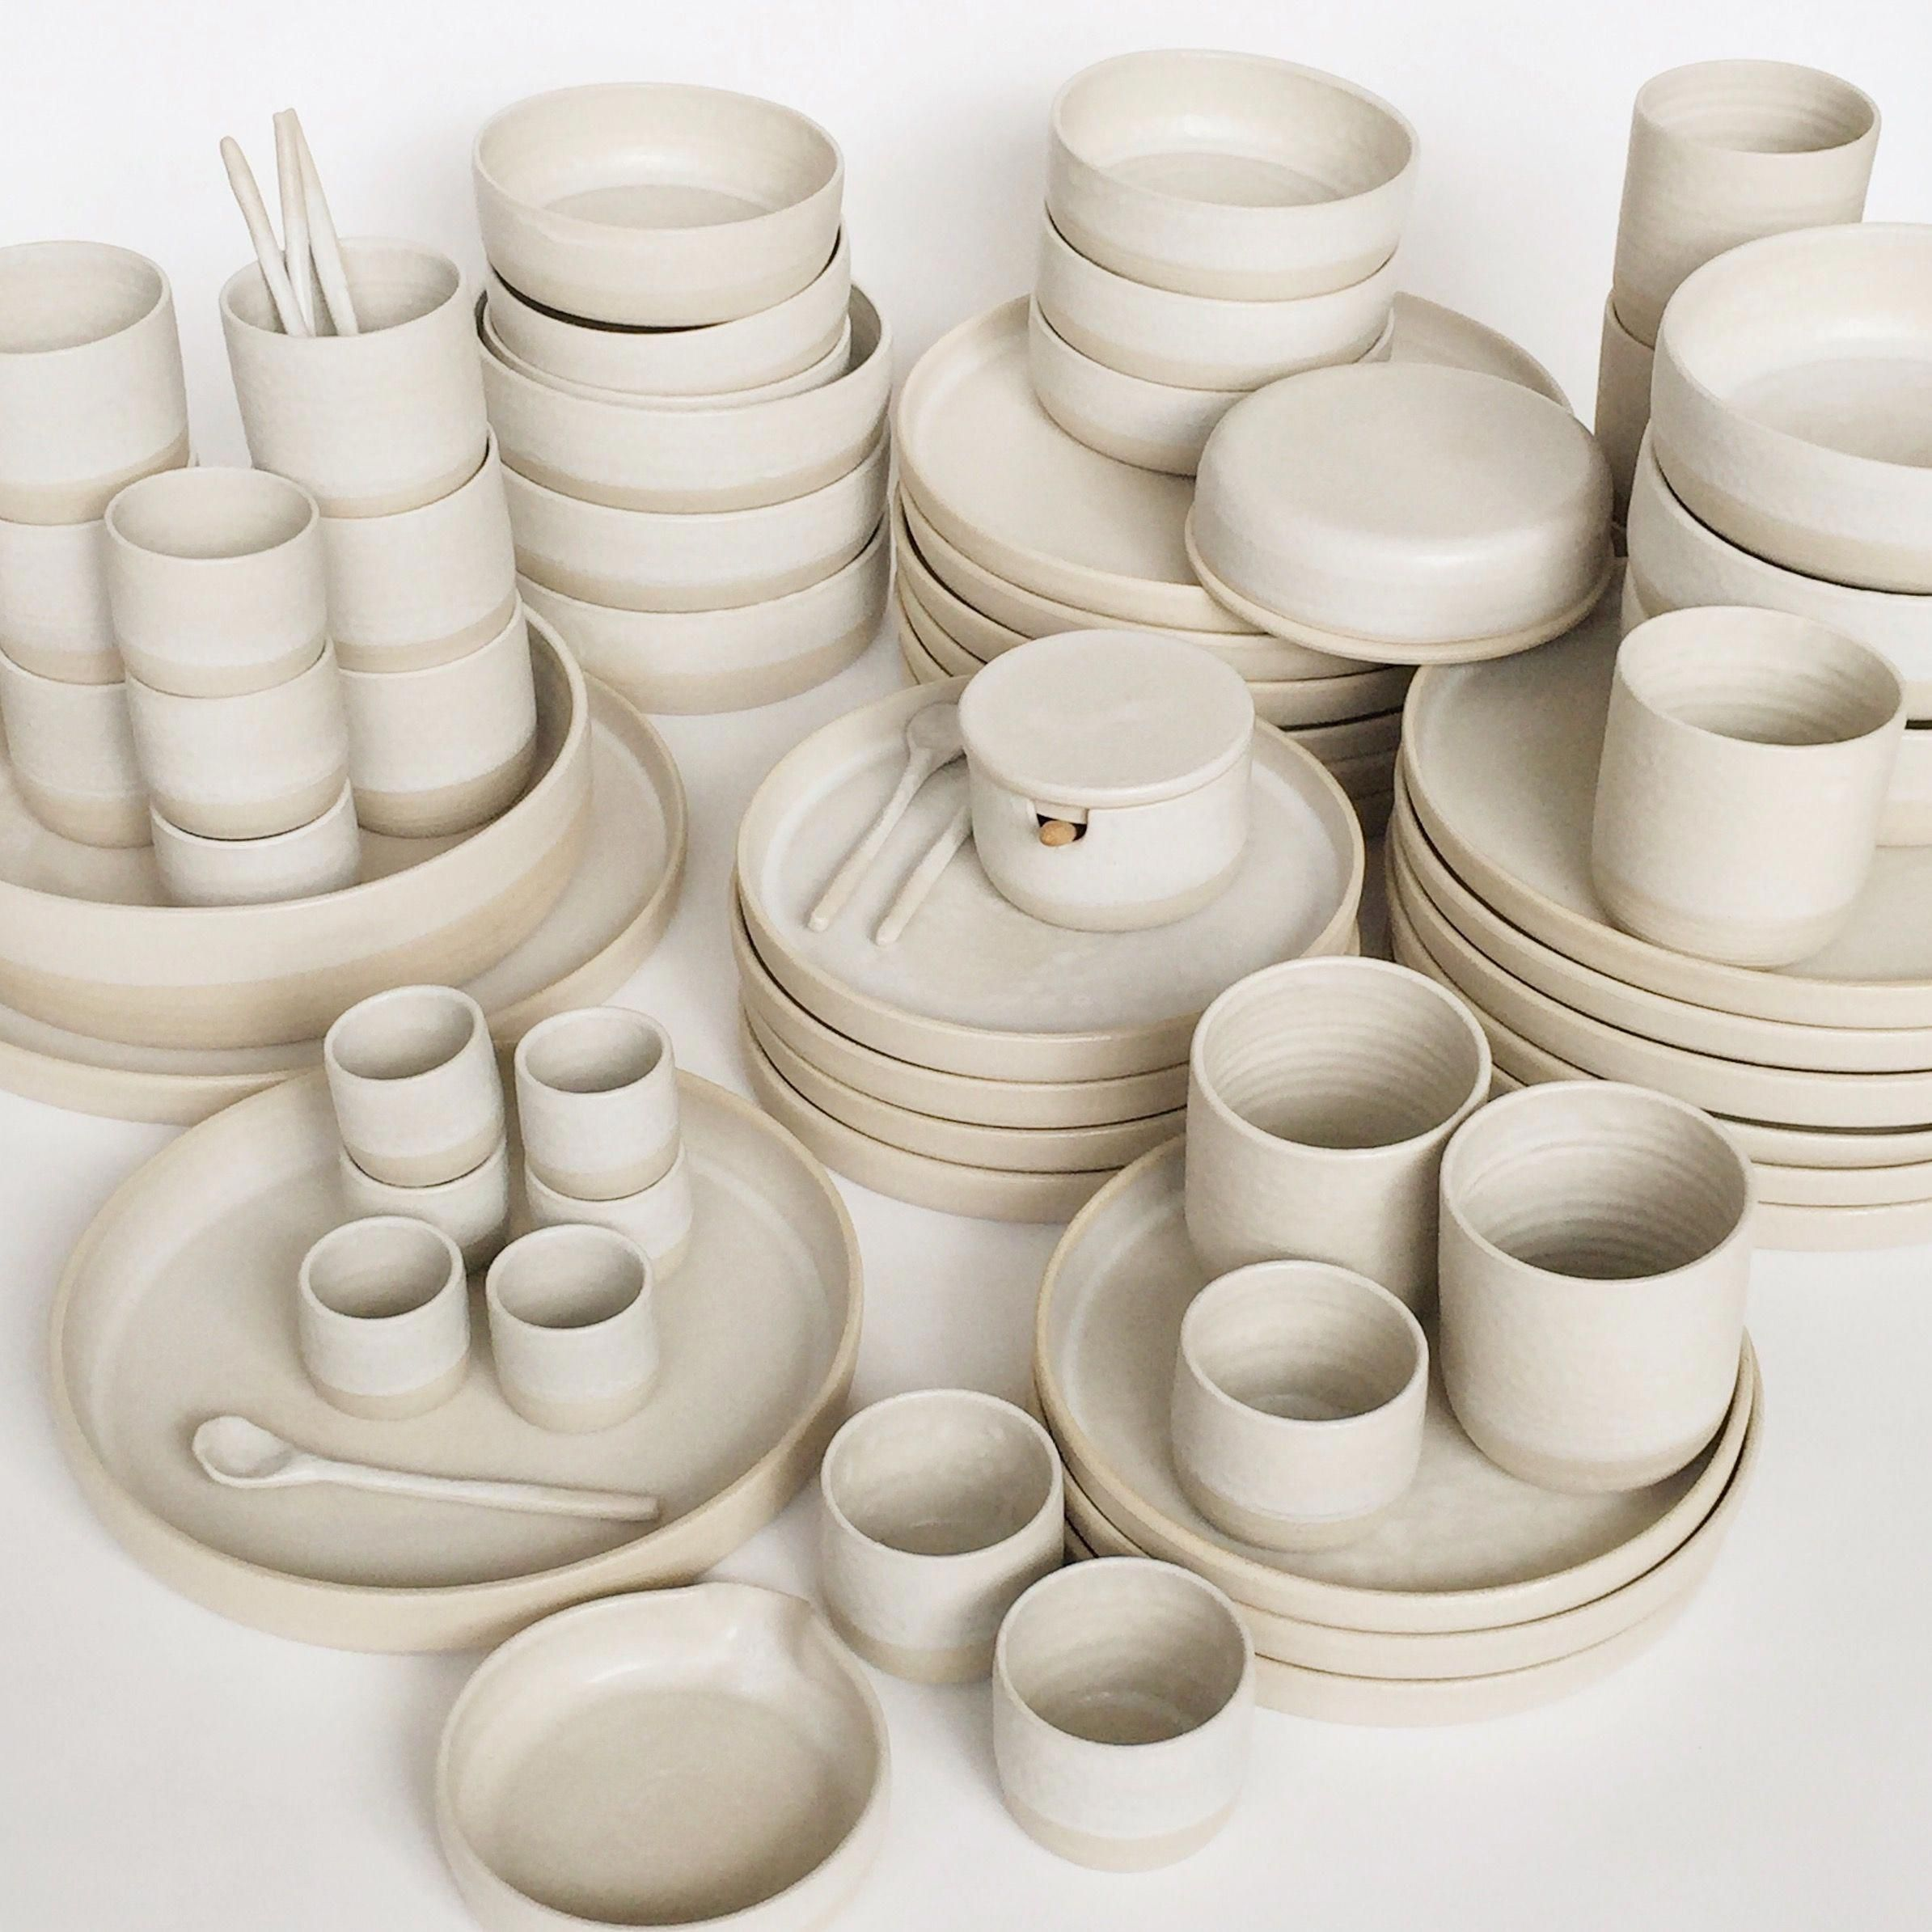 By Annemieke Boots Ceramics Thrown Pottery Tableware White Throwingpottery Pottery Plates Modern Pottery Ceramic Tableware